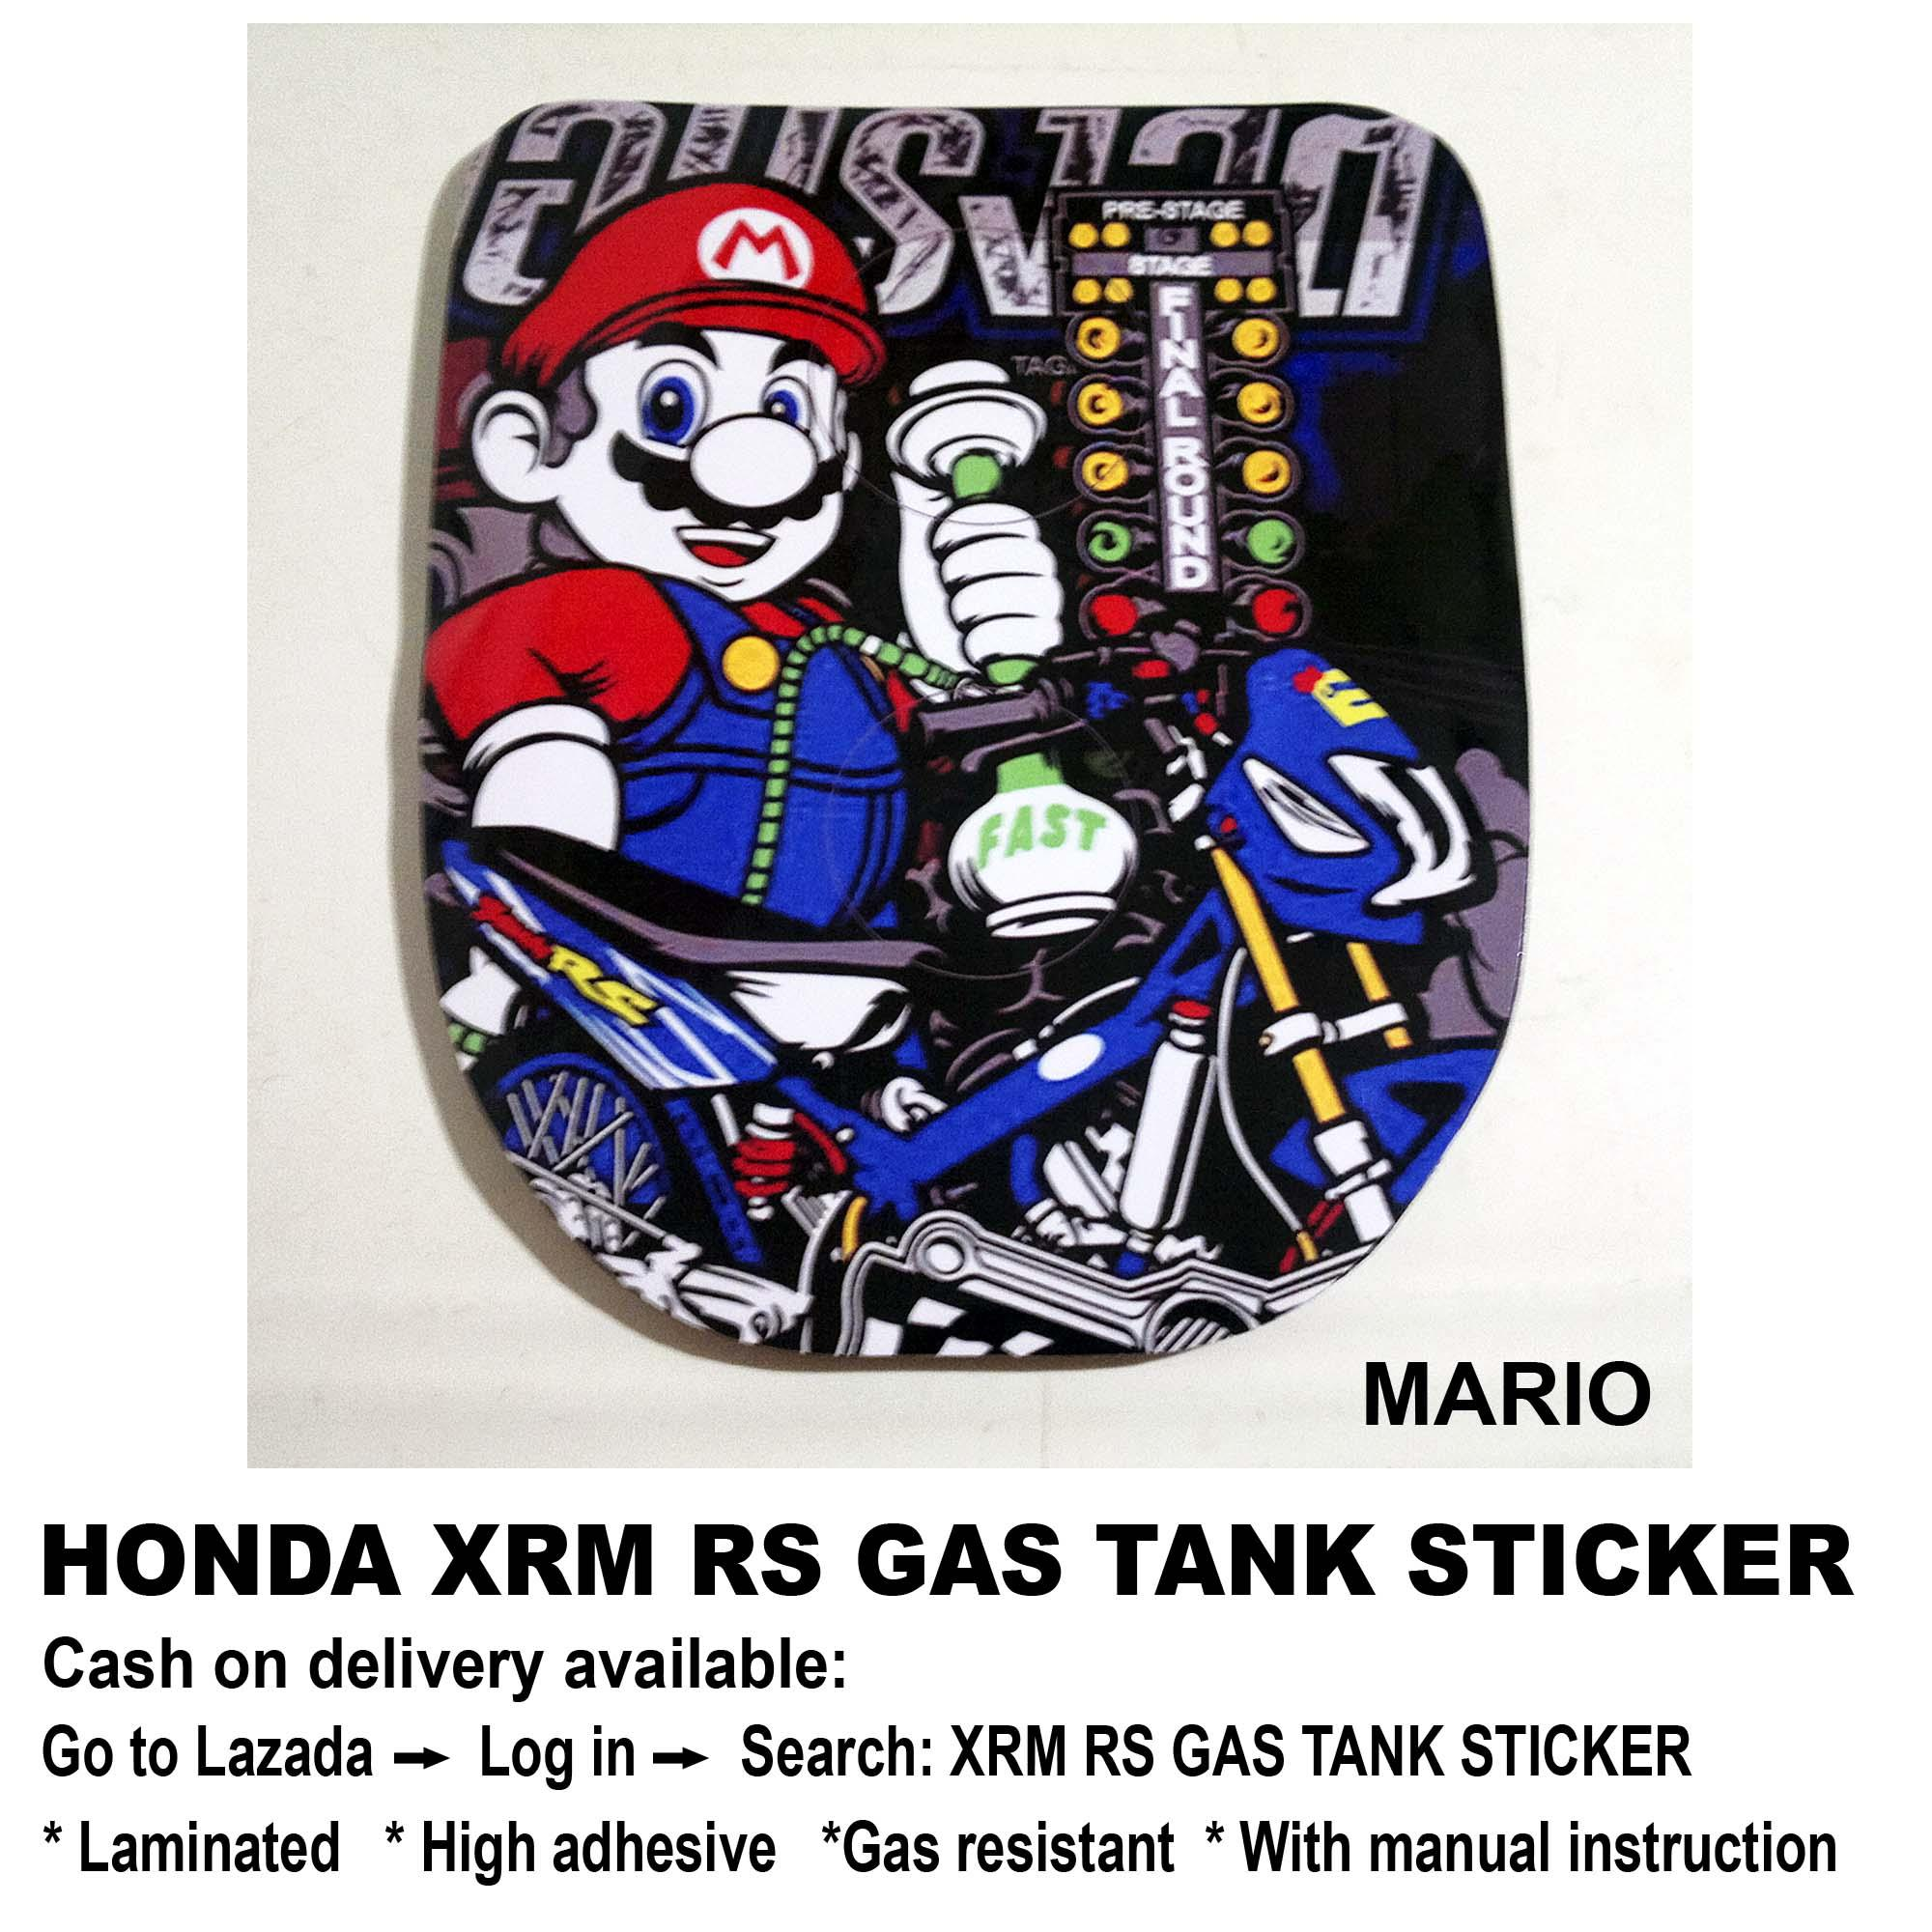 Xrm rs gas tank sticker mario